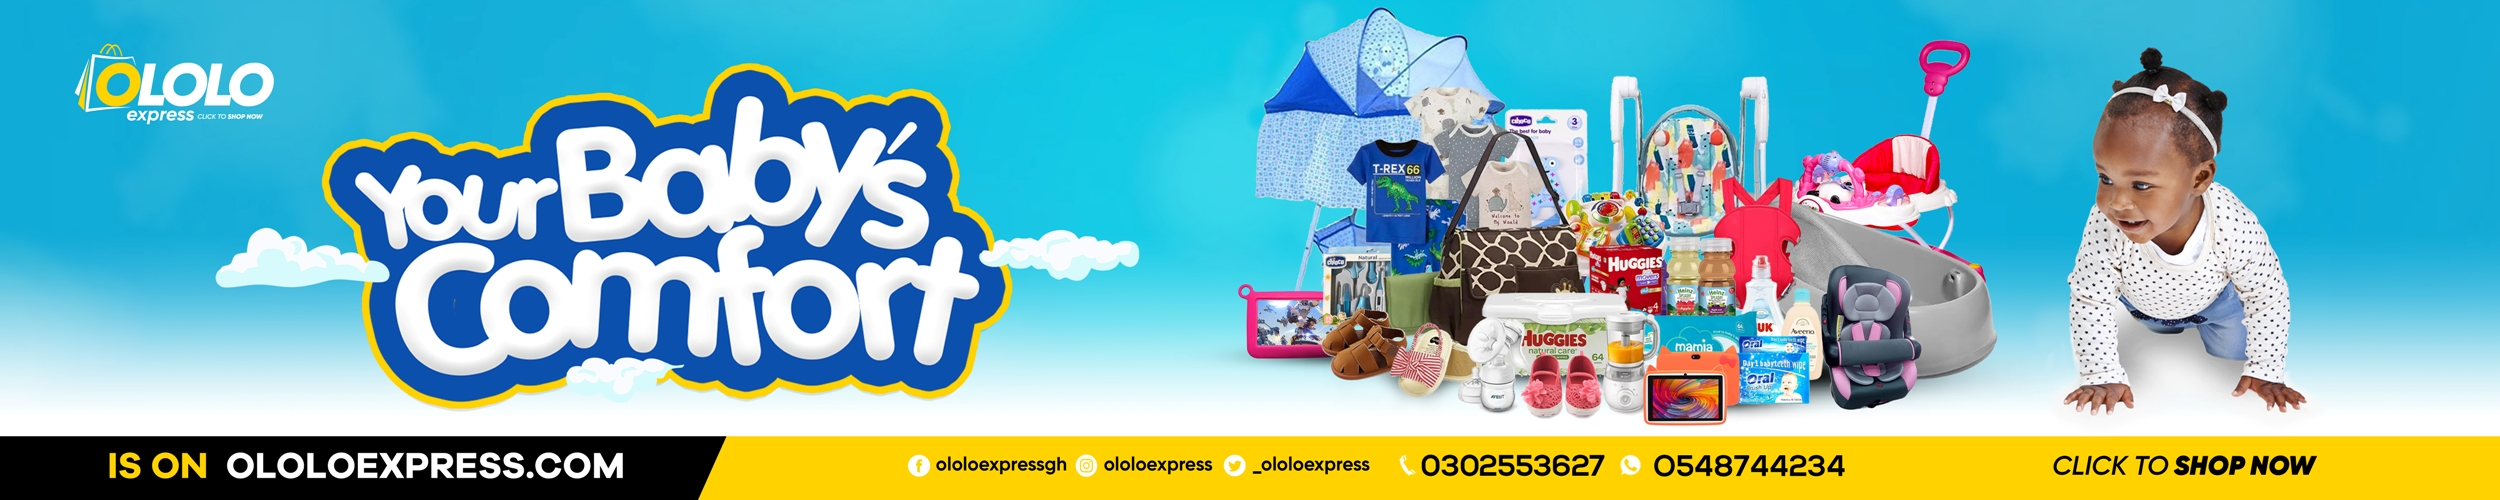 Baby products on ololoexpress